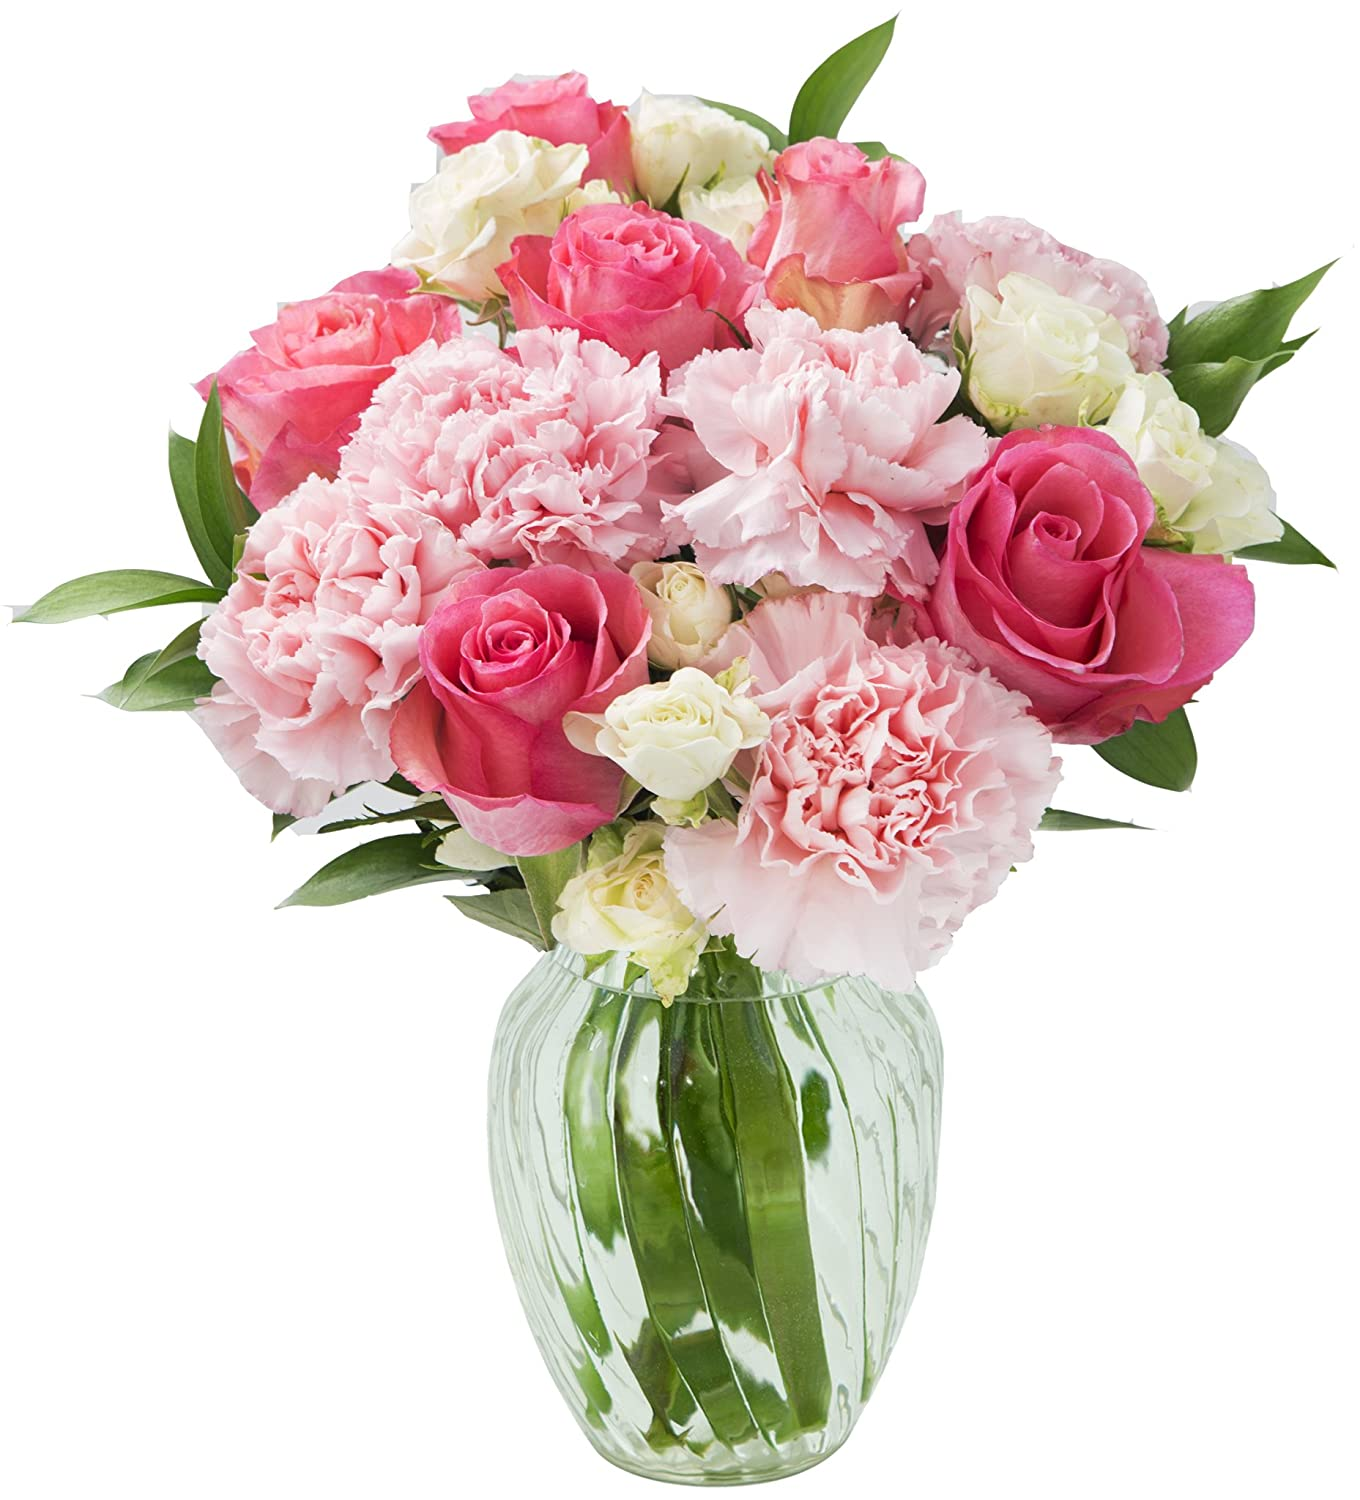 KaBloom Pretty in Pink Roses and Carnations Accented with White Spray Roses  and Lush Greens without Vase